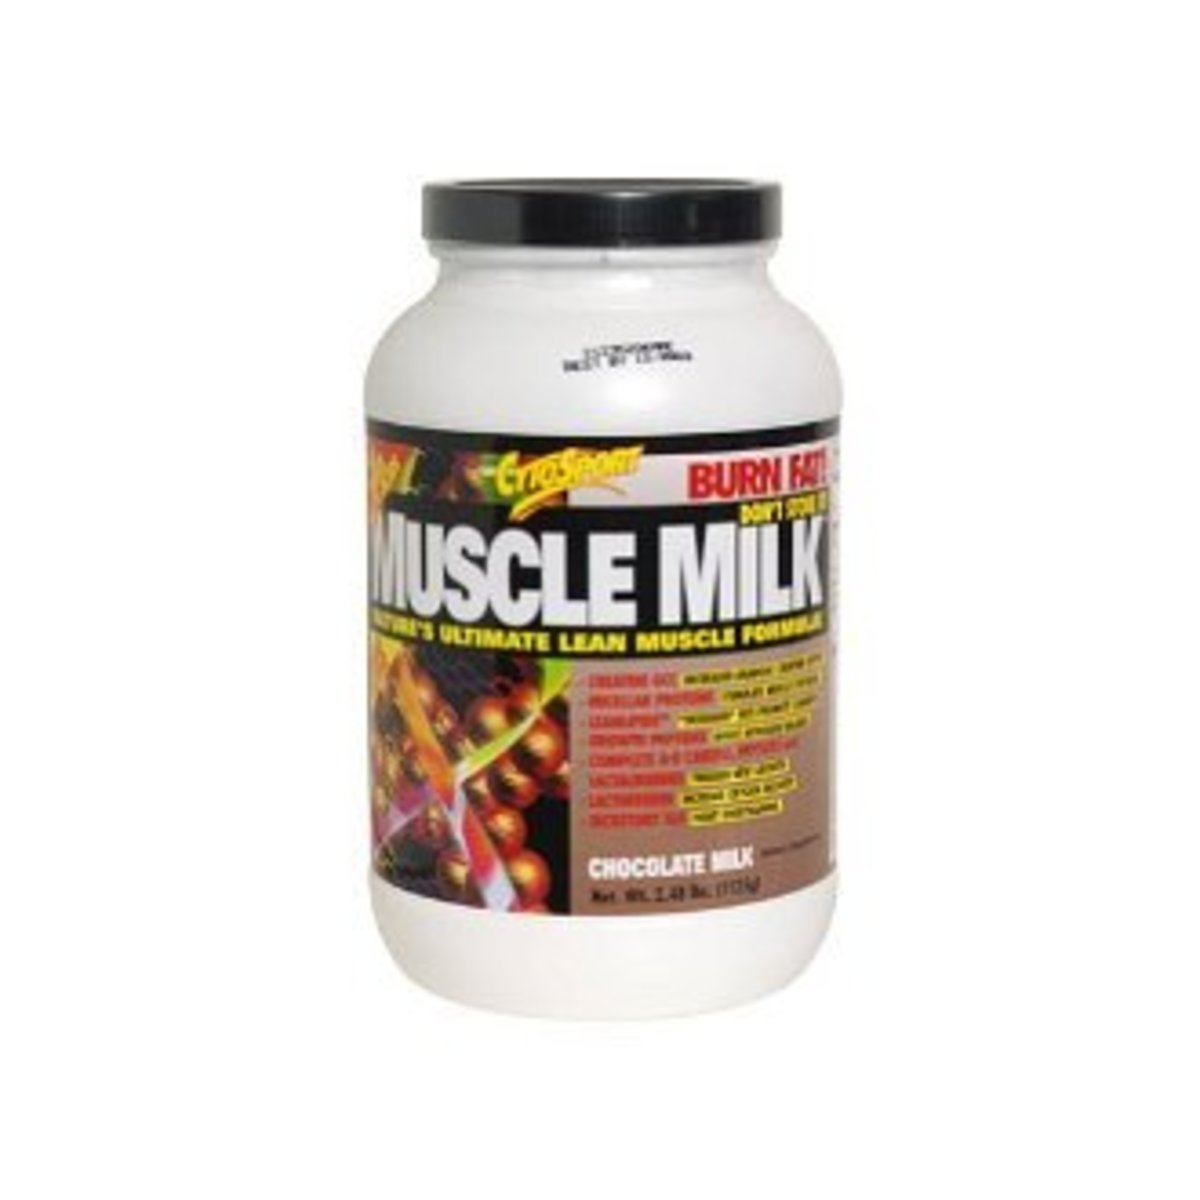 Muscle Milk -- Side Effects and Benefits